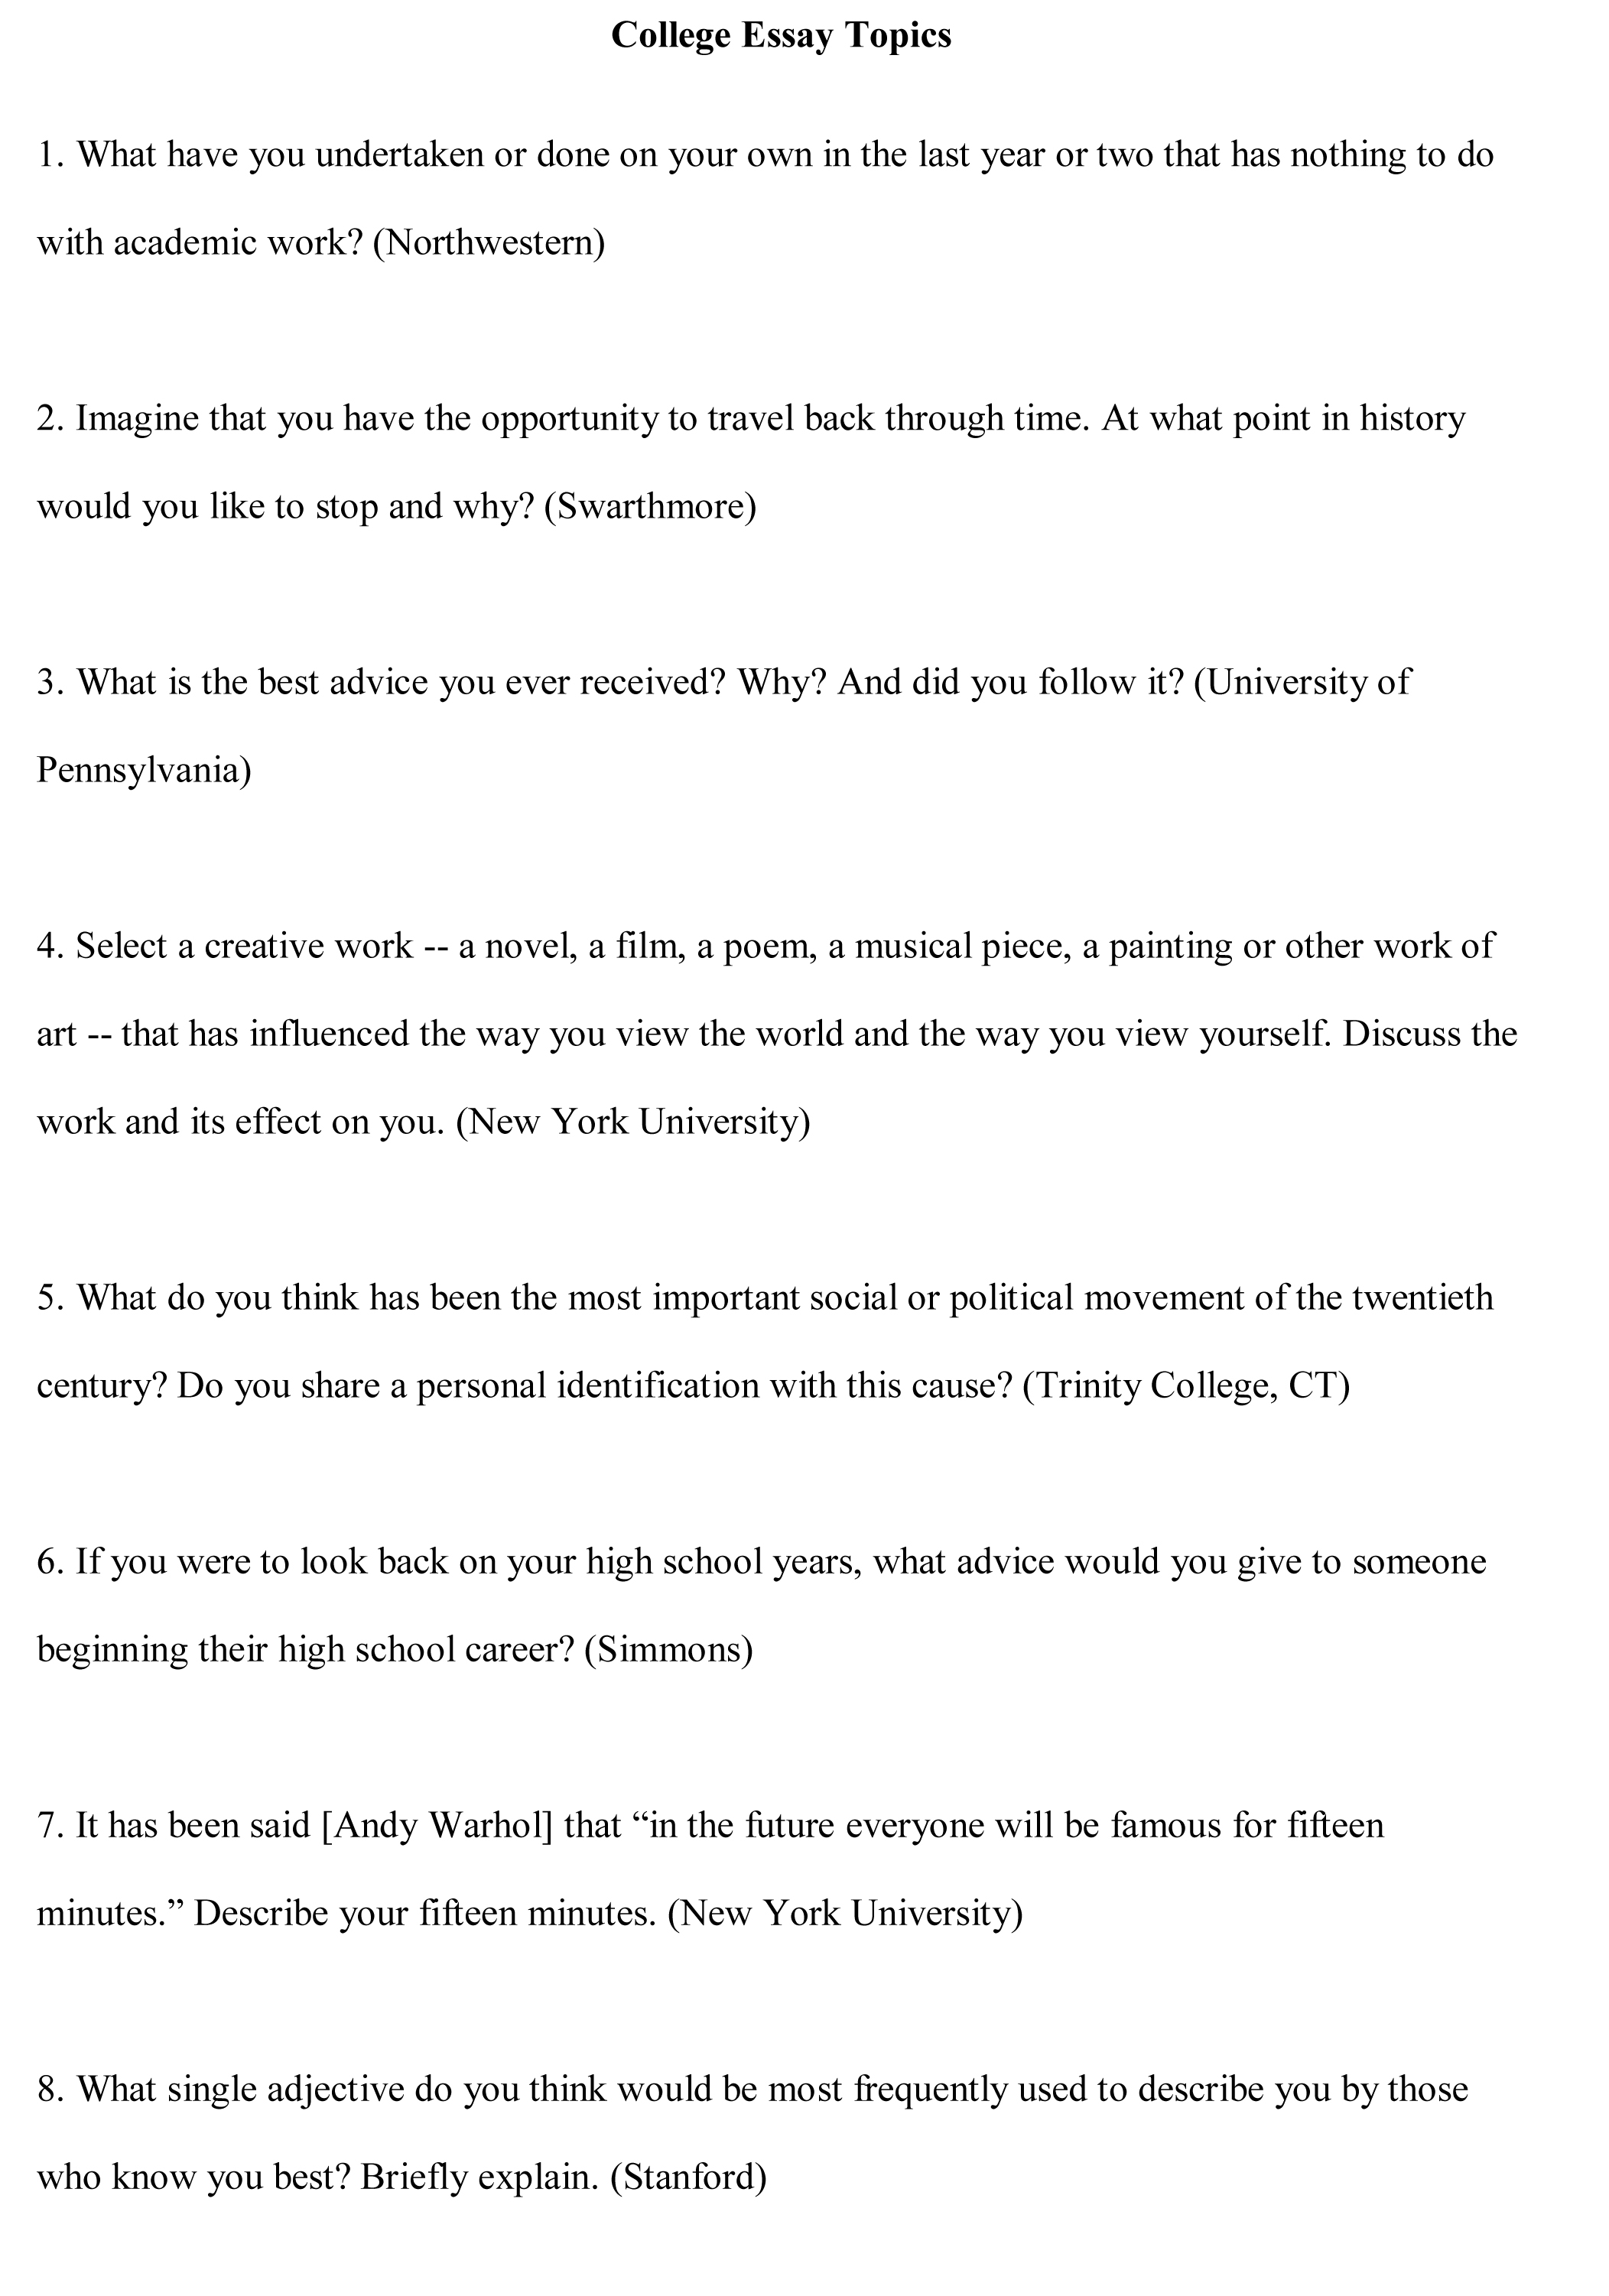 011 Ideas For Research Paper Topic College Essay Topics Free Stupendous A Psychology Interesting Full